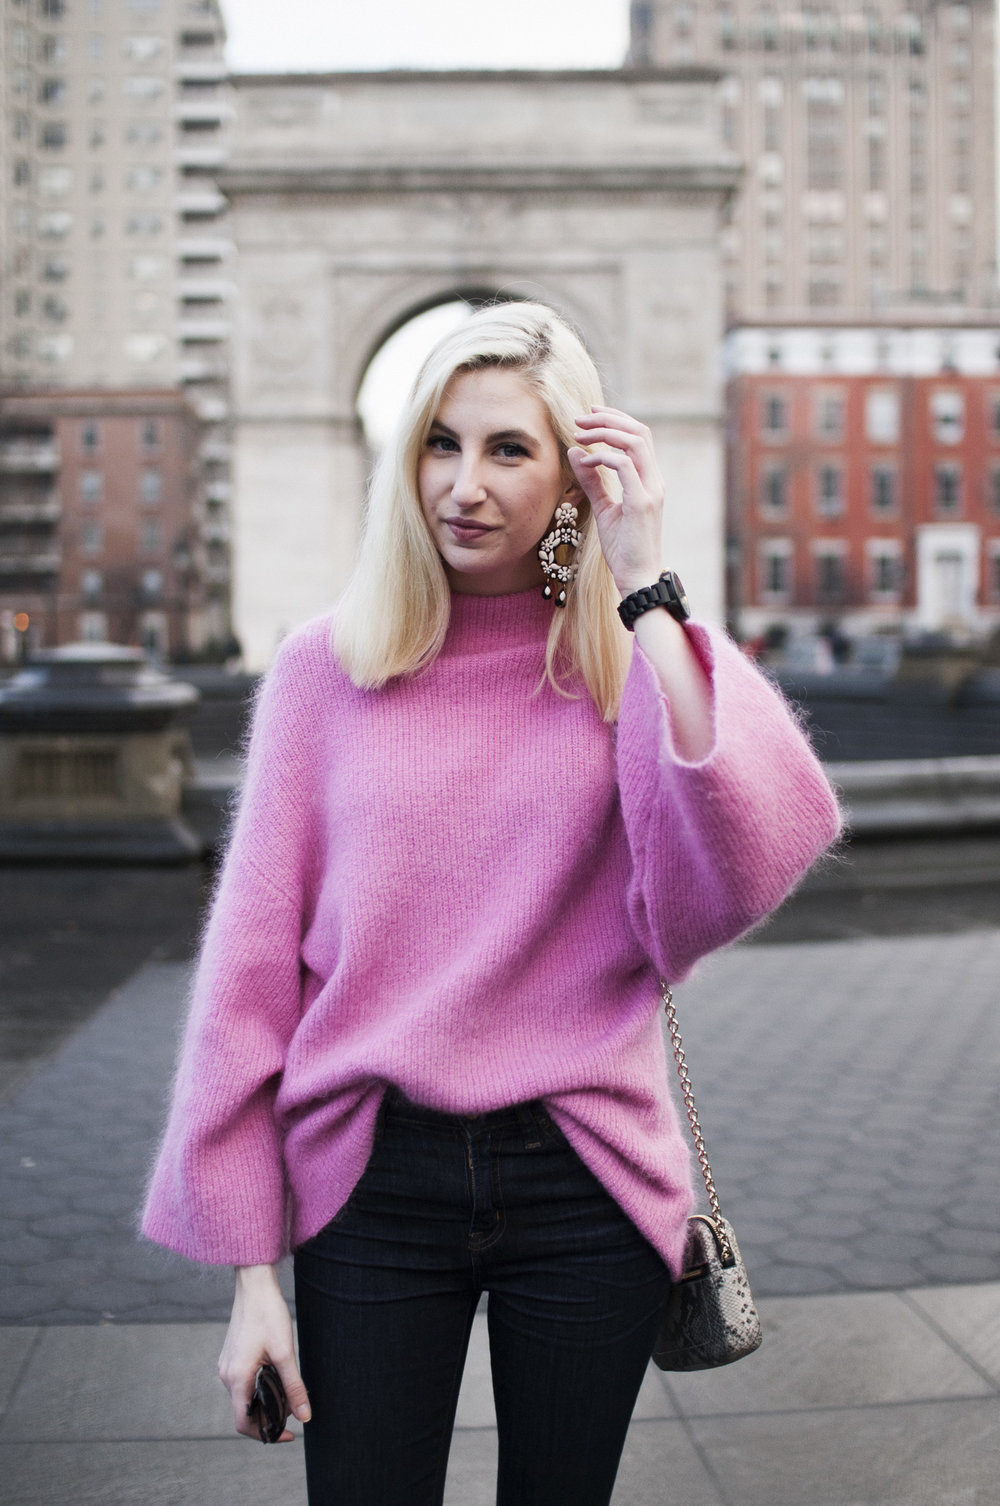 oversized pink mohair mockneck bell sleeve sweater, J.Crew lookout high rise jeans, black block heeled booties, oversized J.Crew tortoiseshell earrings, washington sq park new york city